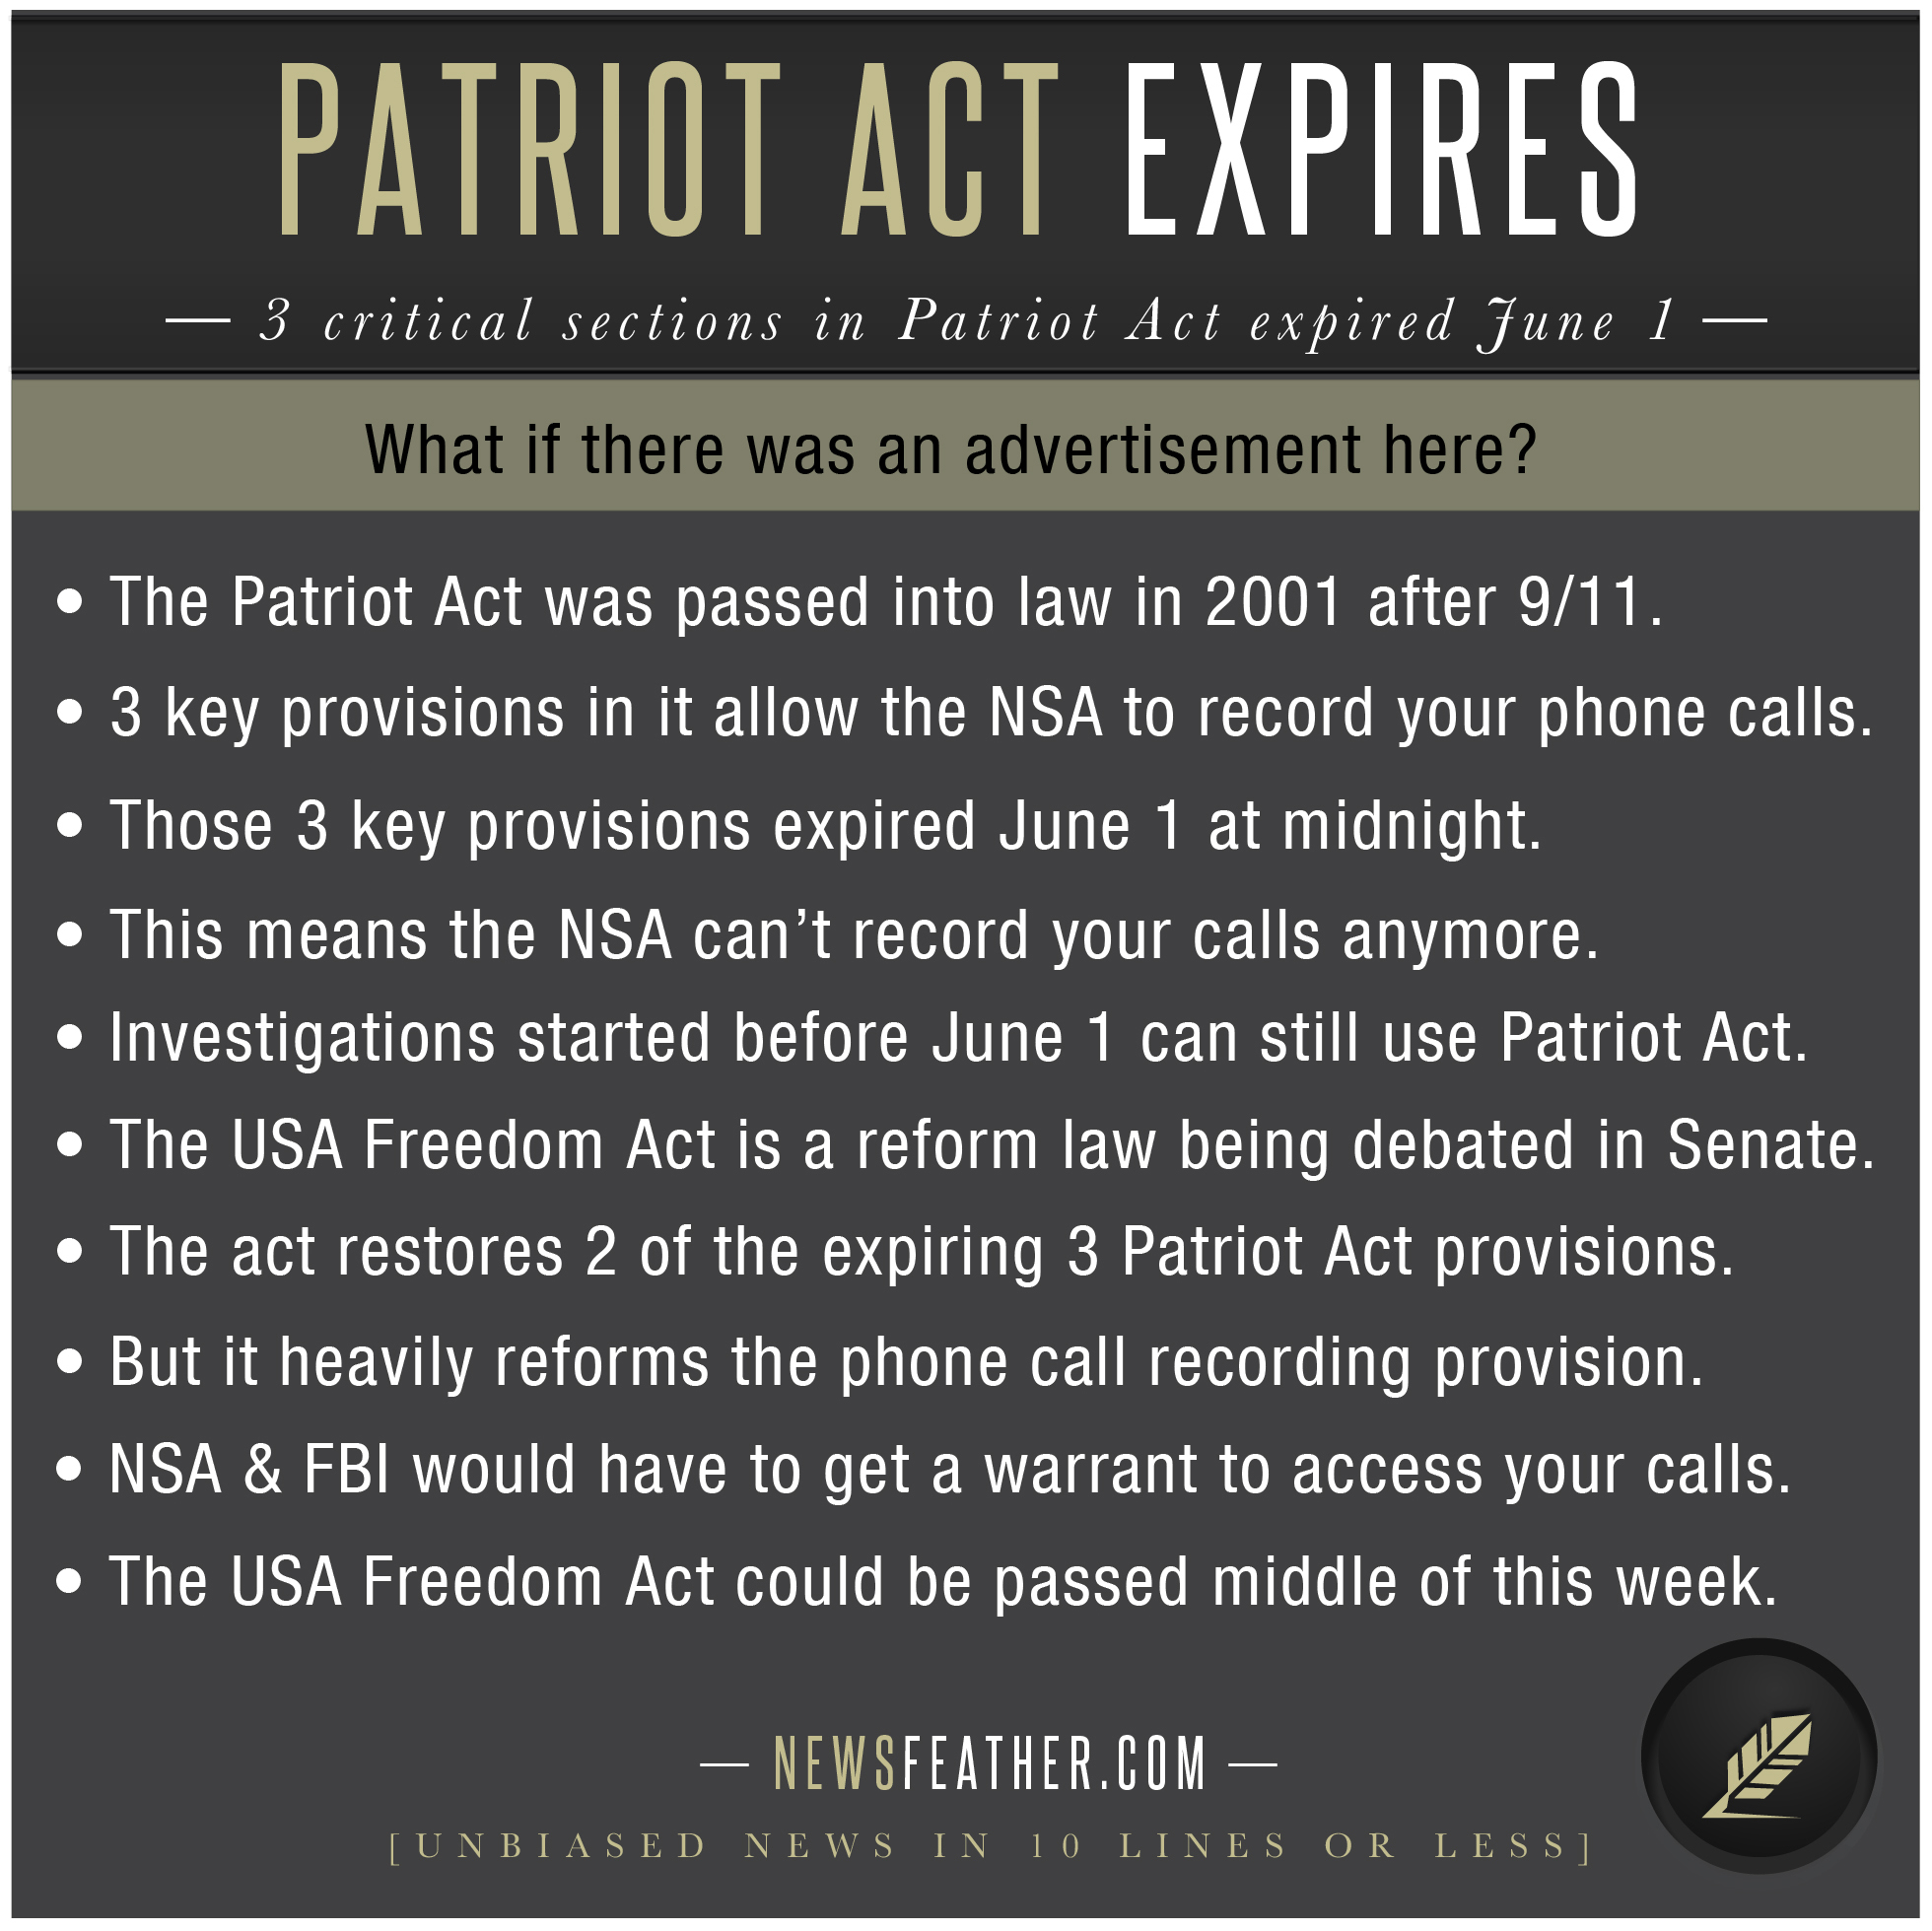 usa patriot act of 2001 essay The usa patriot act of 2001 essayssince the incredible events of september 11, we americans have had plenty to be concerned about: the nation has been grieving over the tragic loss of lives, nervous about the economic fall out from the attacks, reluctant to fly in commercial aircraft, anxious over.